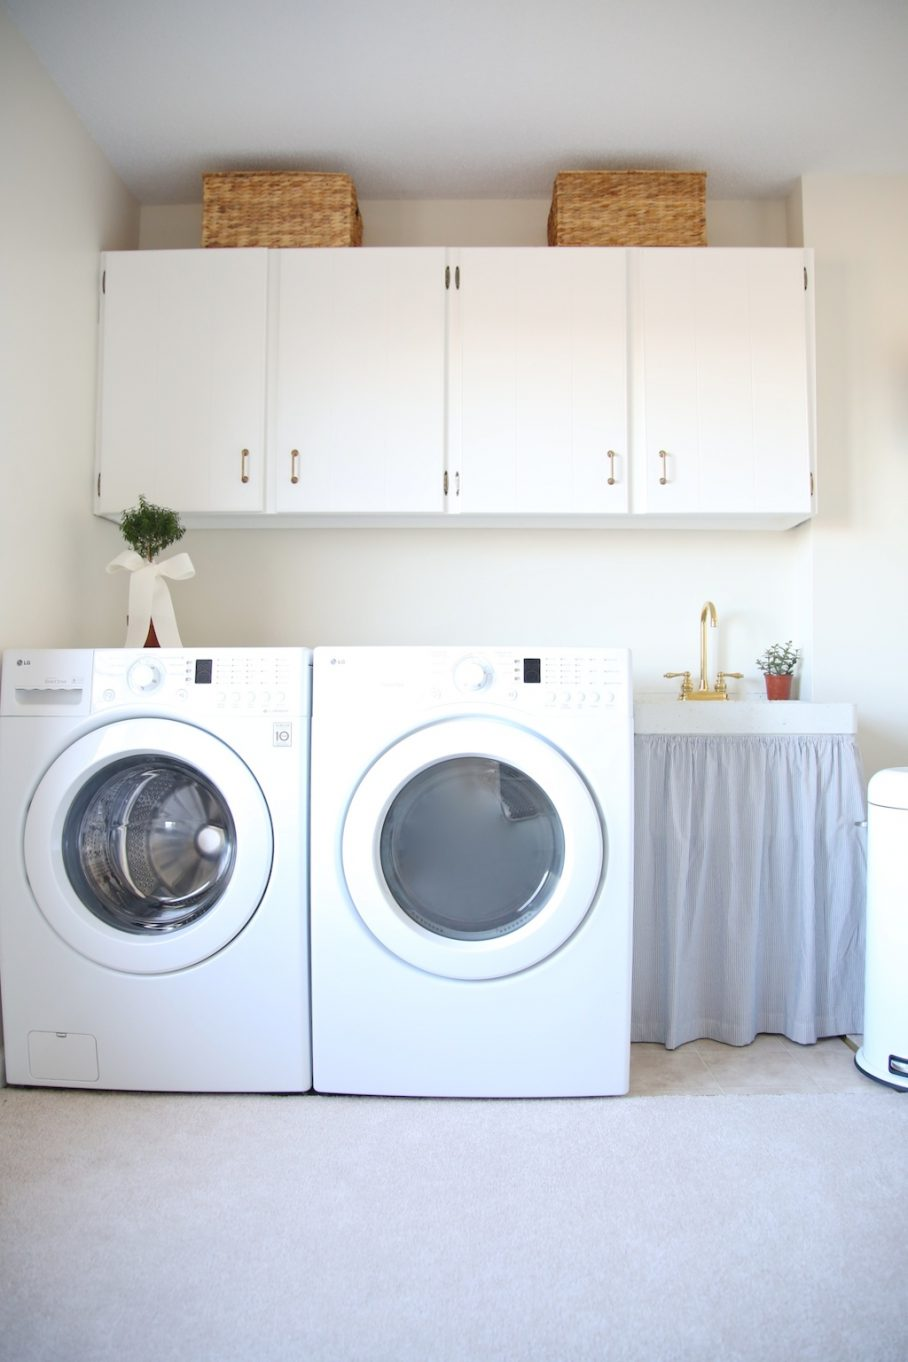 Laundry Rooms With Shiplap Cabinets Ikea Room Design Small Laundry Room Decorating Ideas 908x1362 Wallpaper Teahub Io